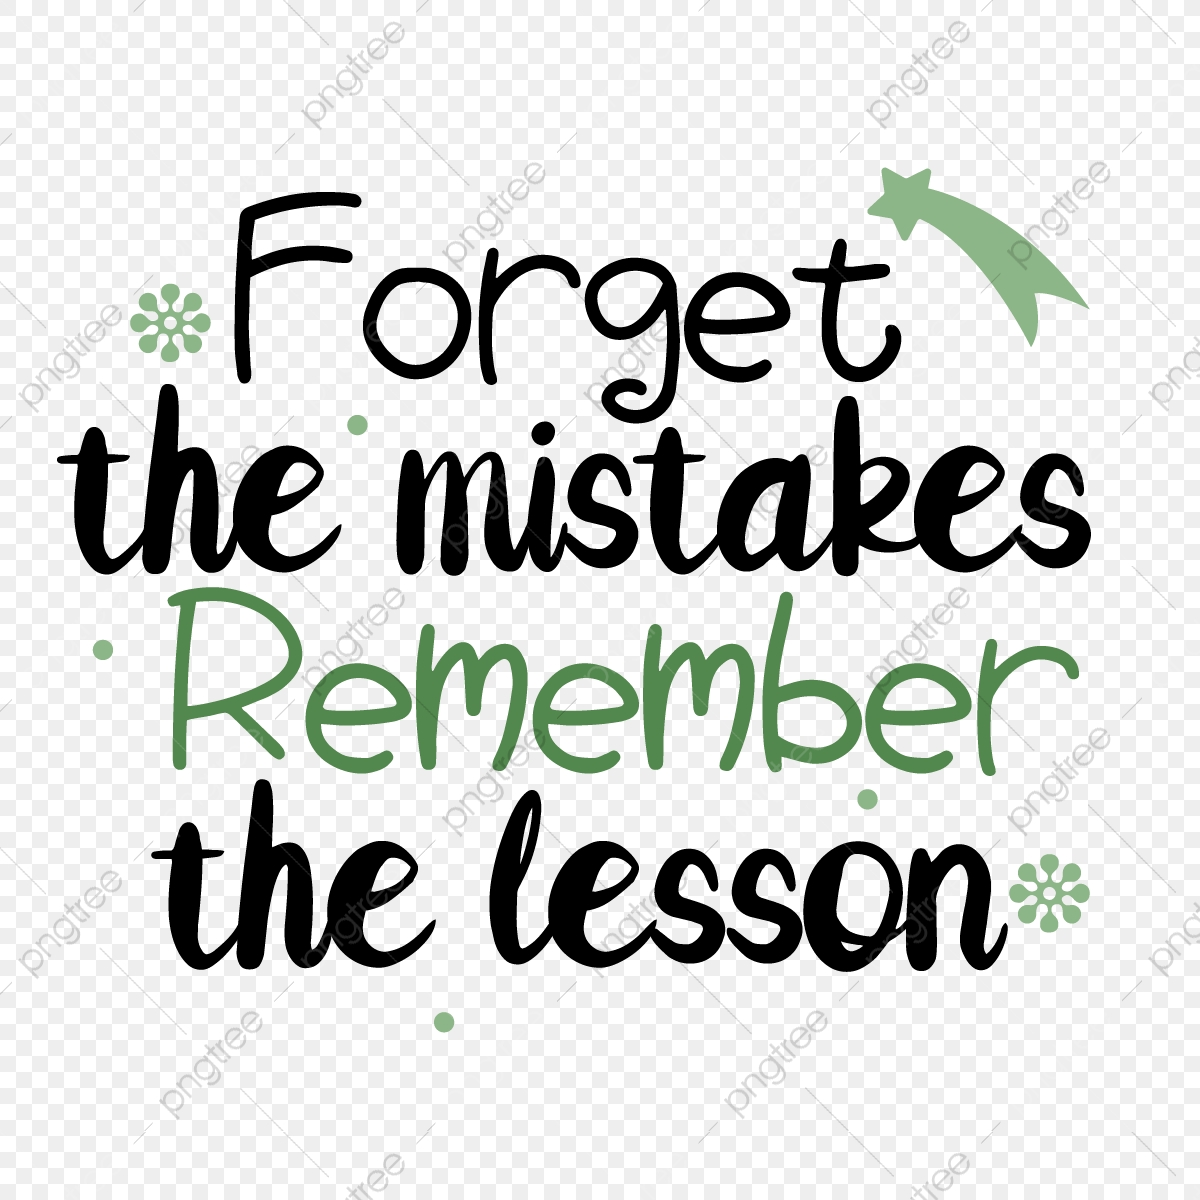 Learning From Mistakes Worksheets & Teaching Resources | TpT